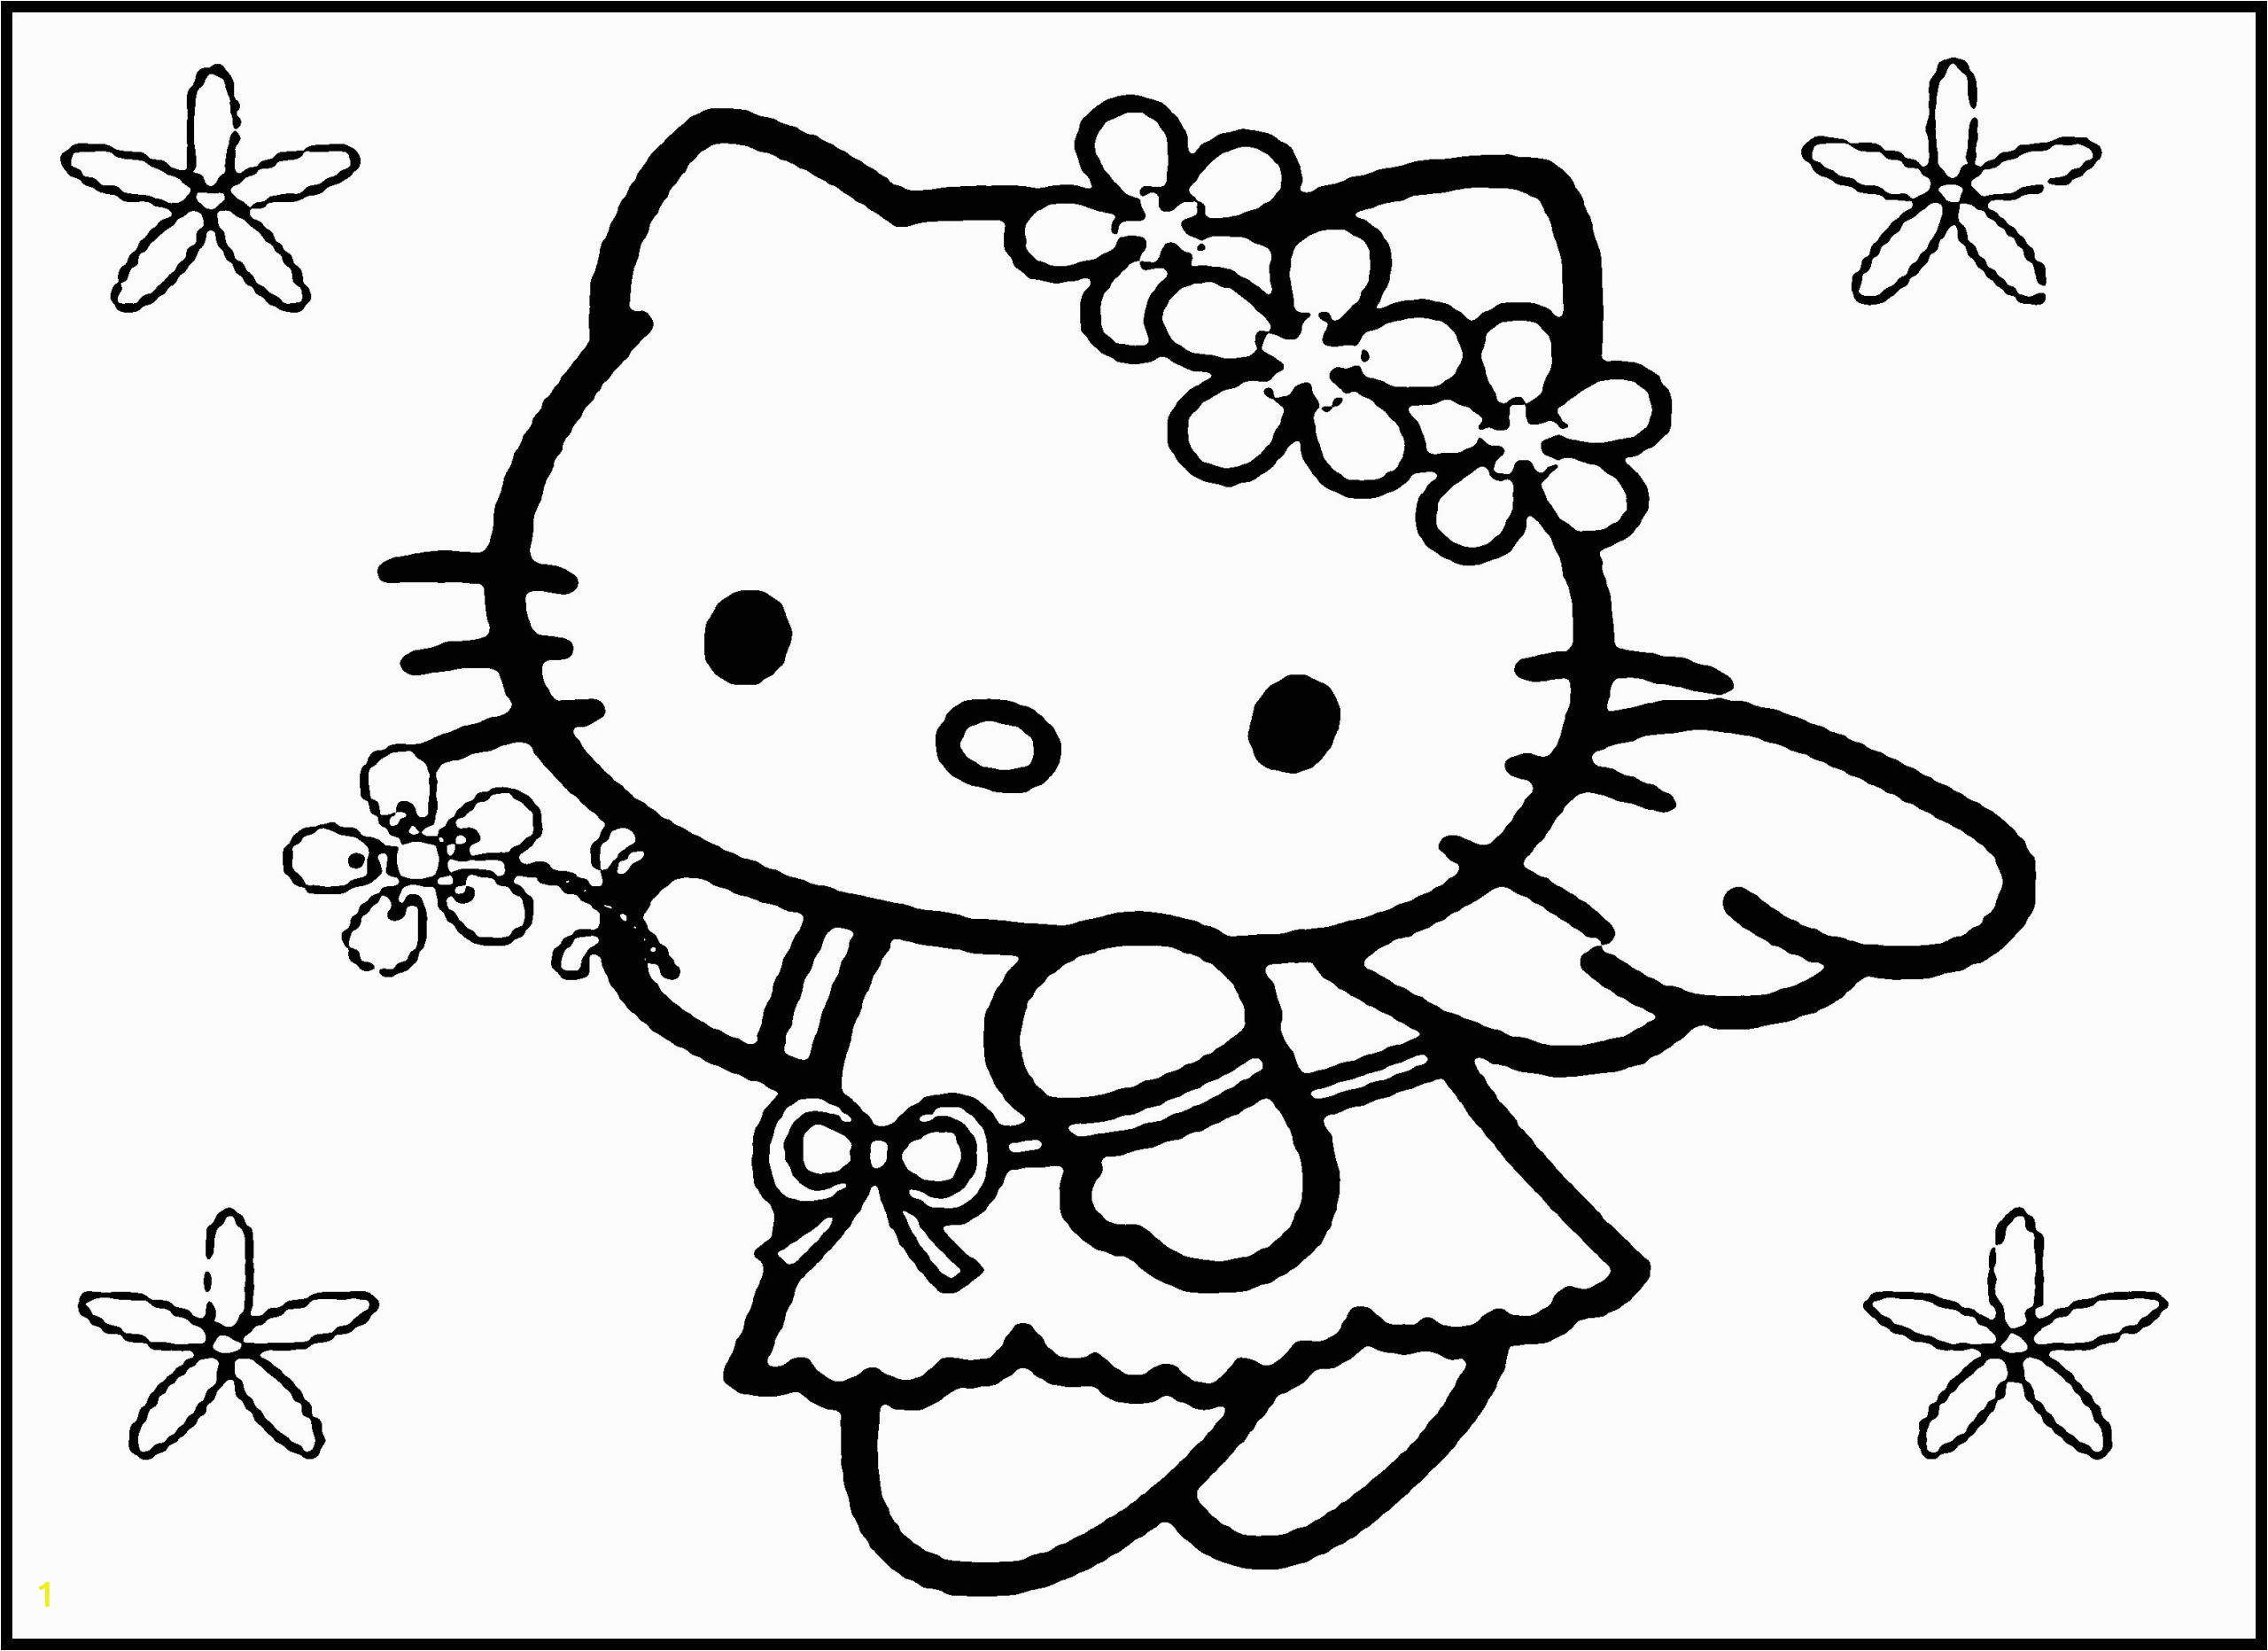 free basketball coloring pages to print fresh free printable hello kitty coloring pages of free basketball coloring pages to print scaled